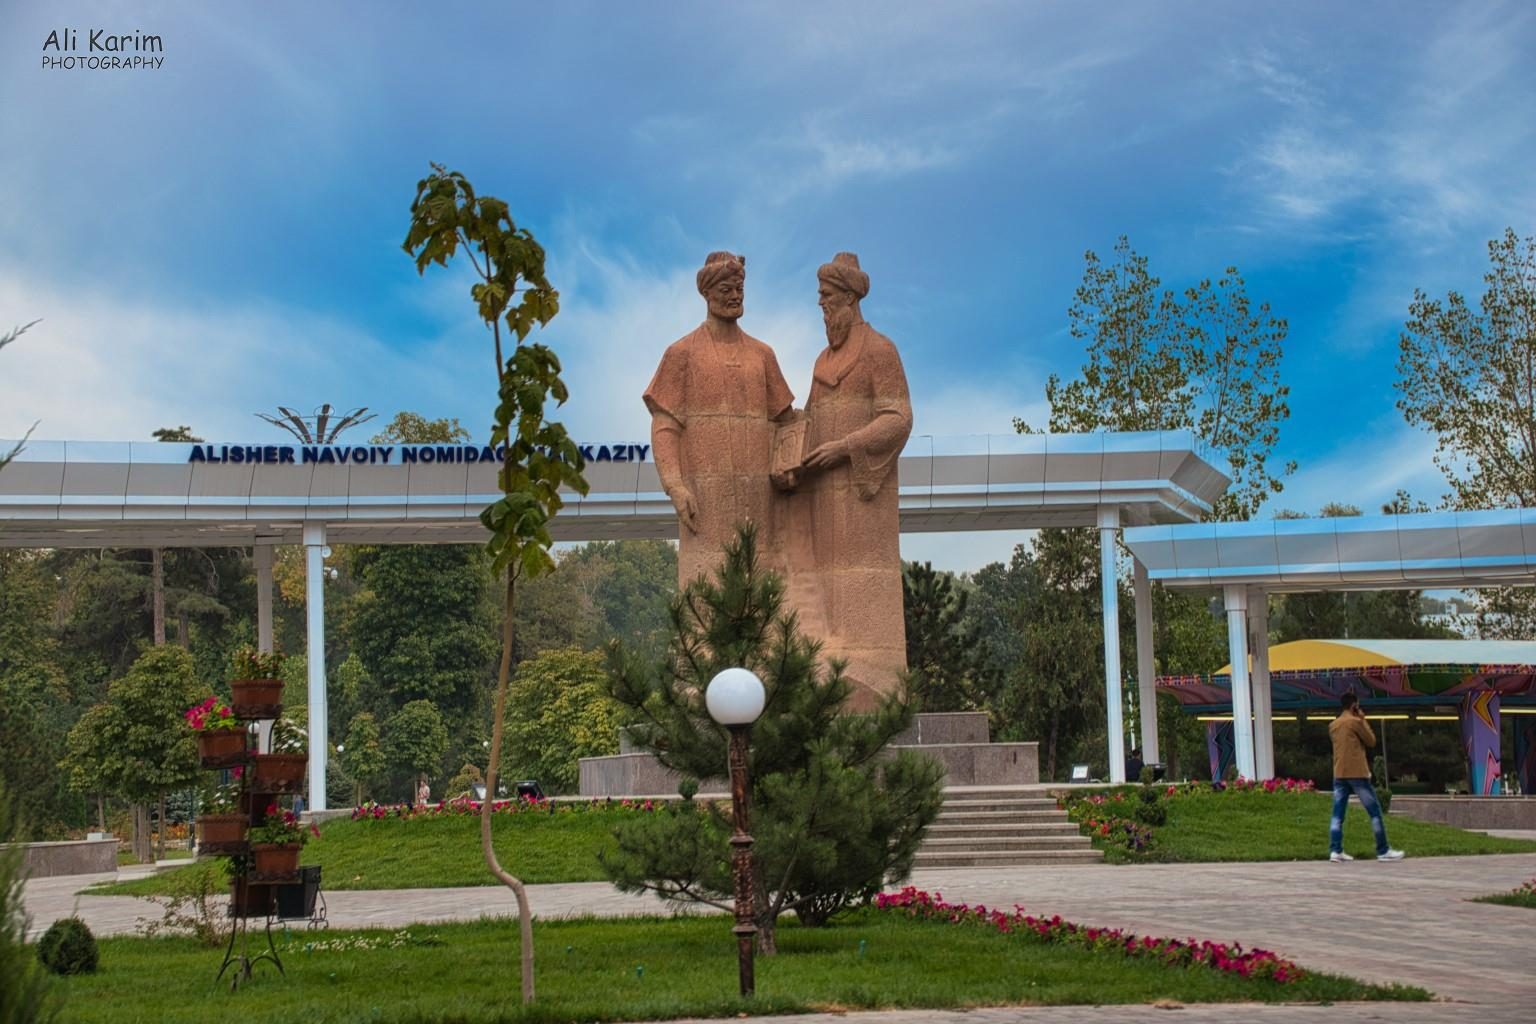 More Samarkand, Nice park with statues of learned men